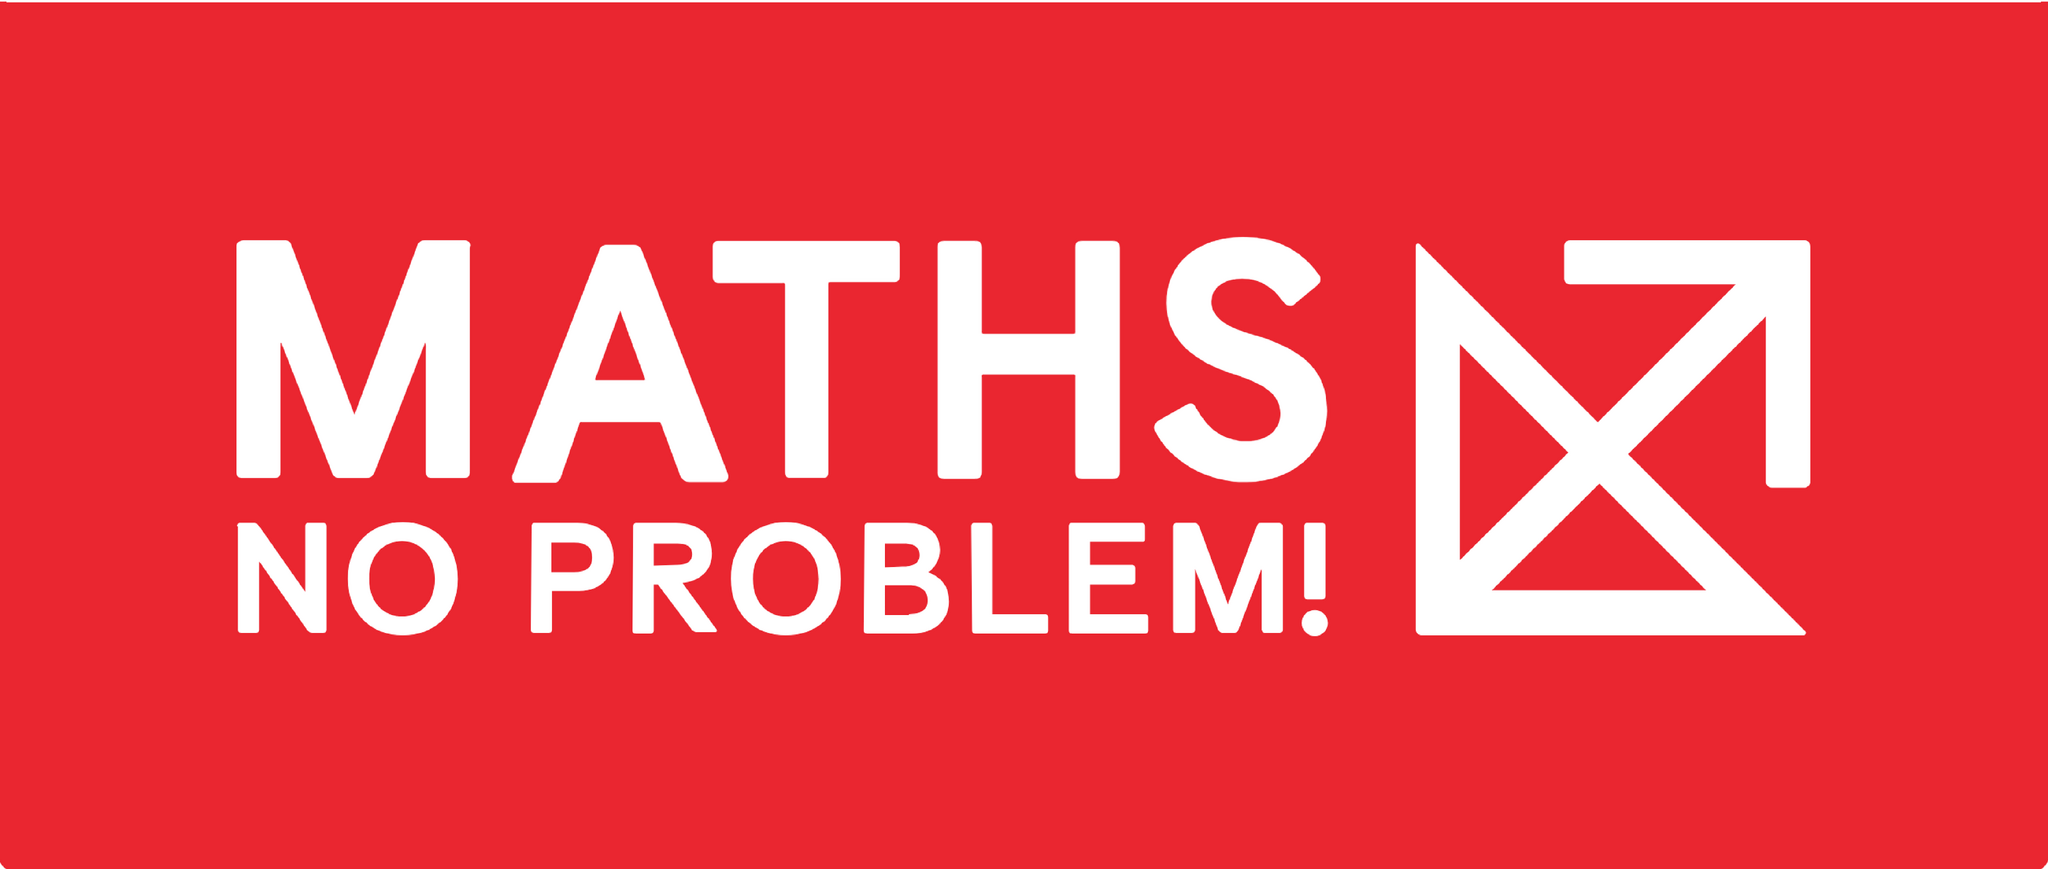 Maths - No Problem!